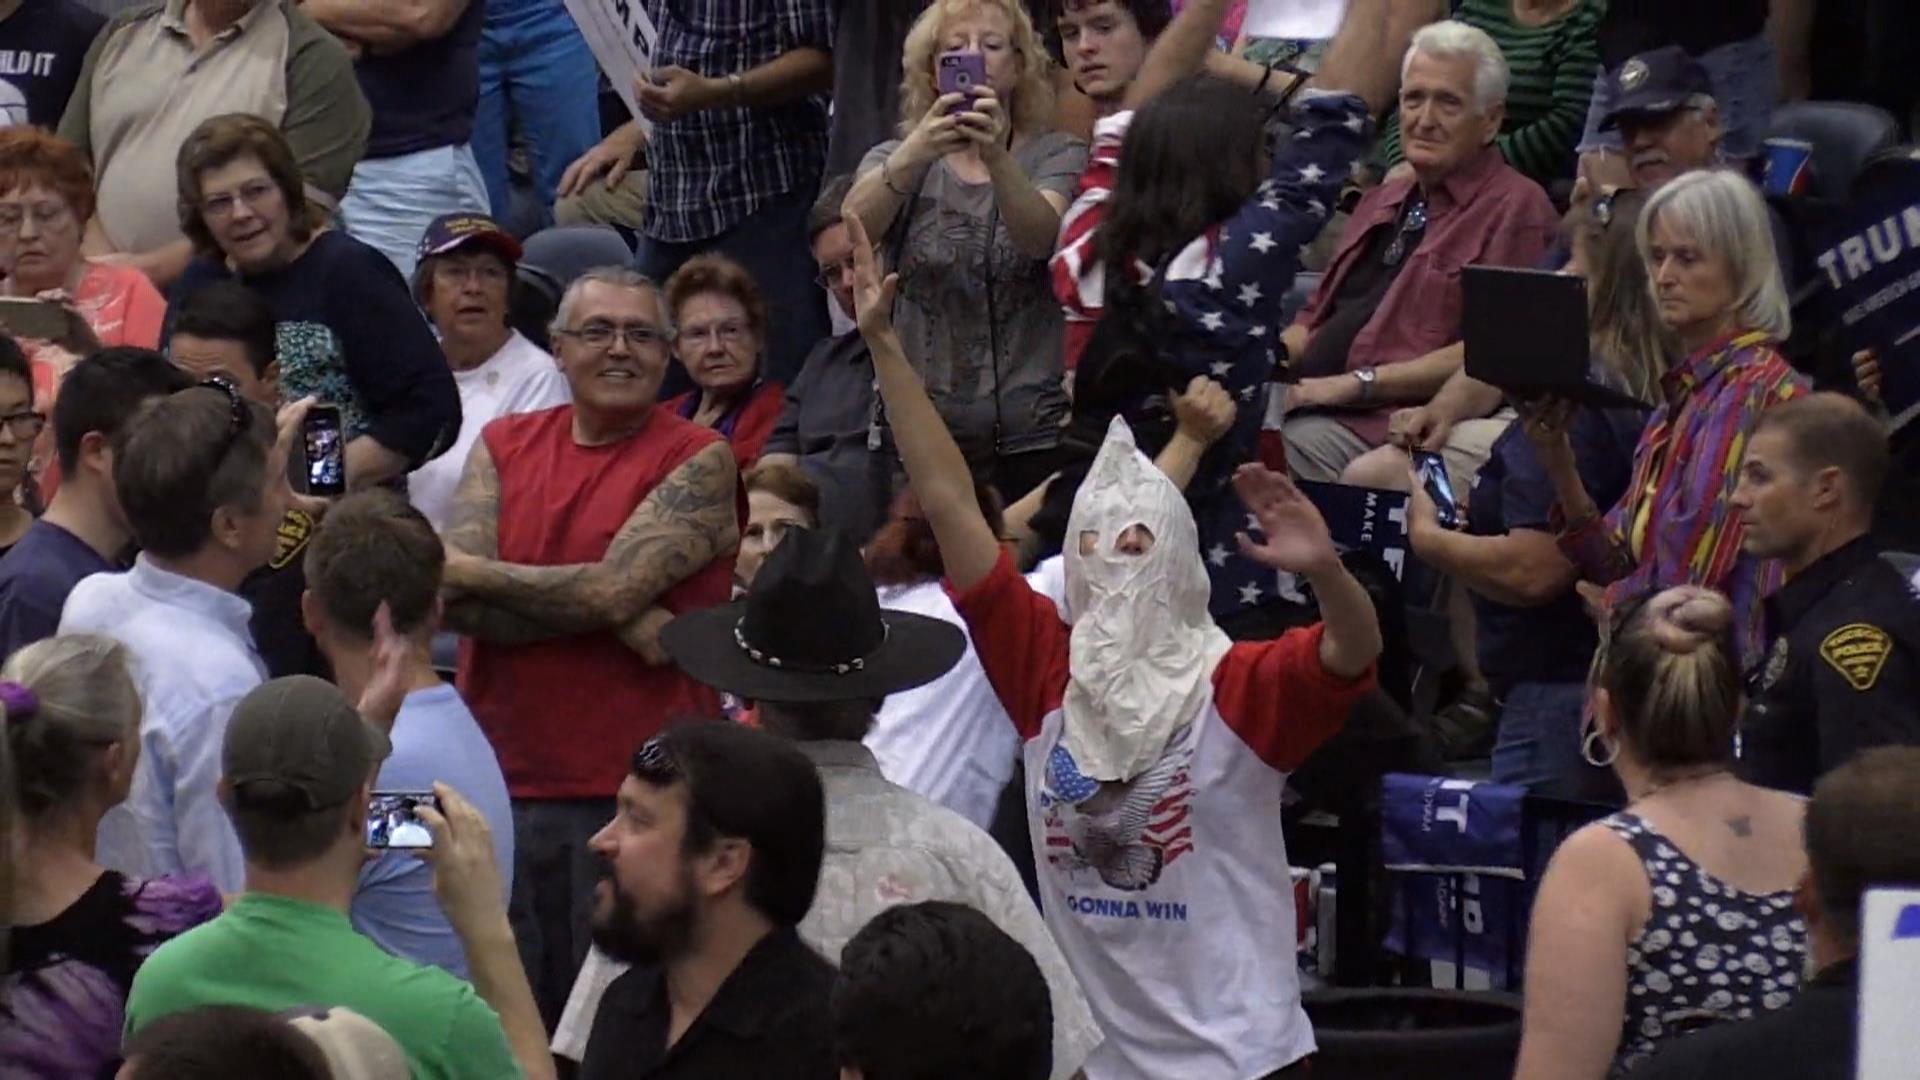 Man in Fake Klan Outfit Disrupts Trump Rally